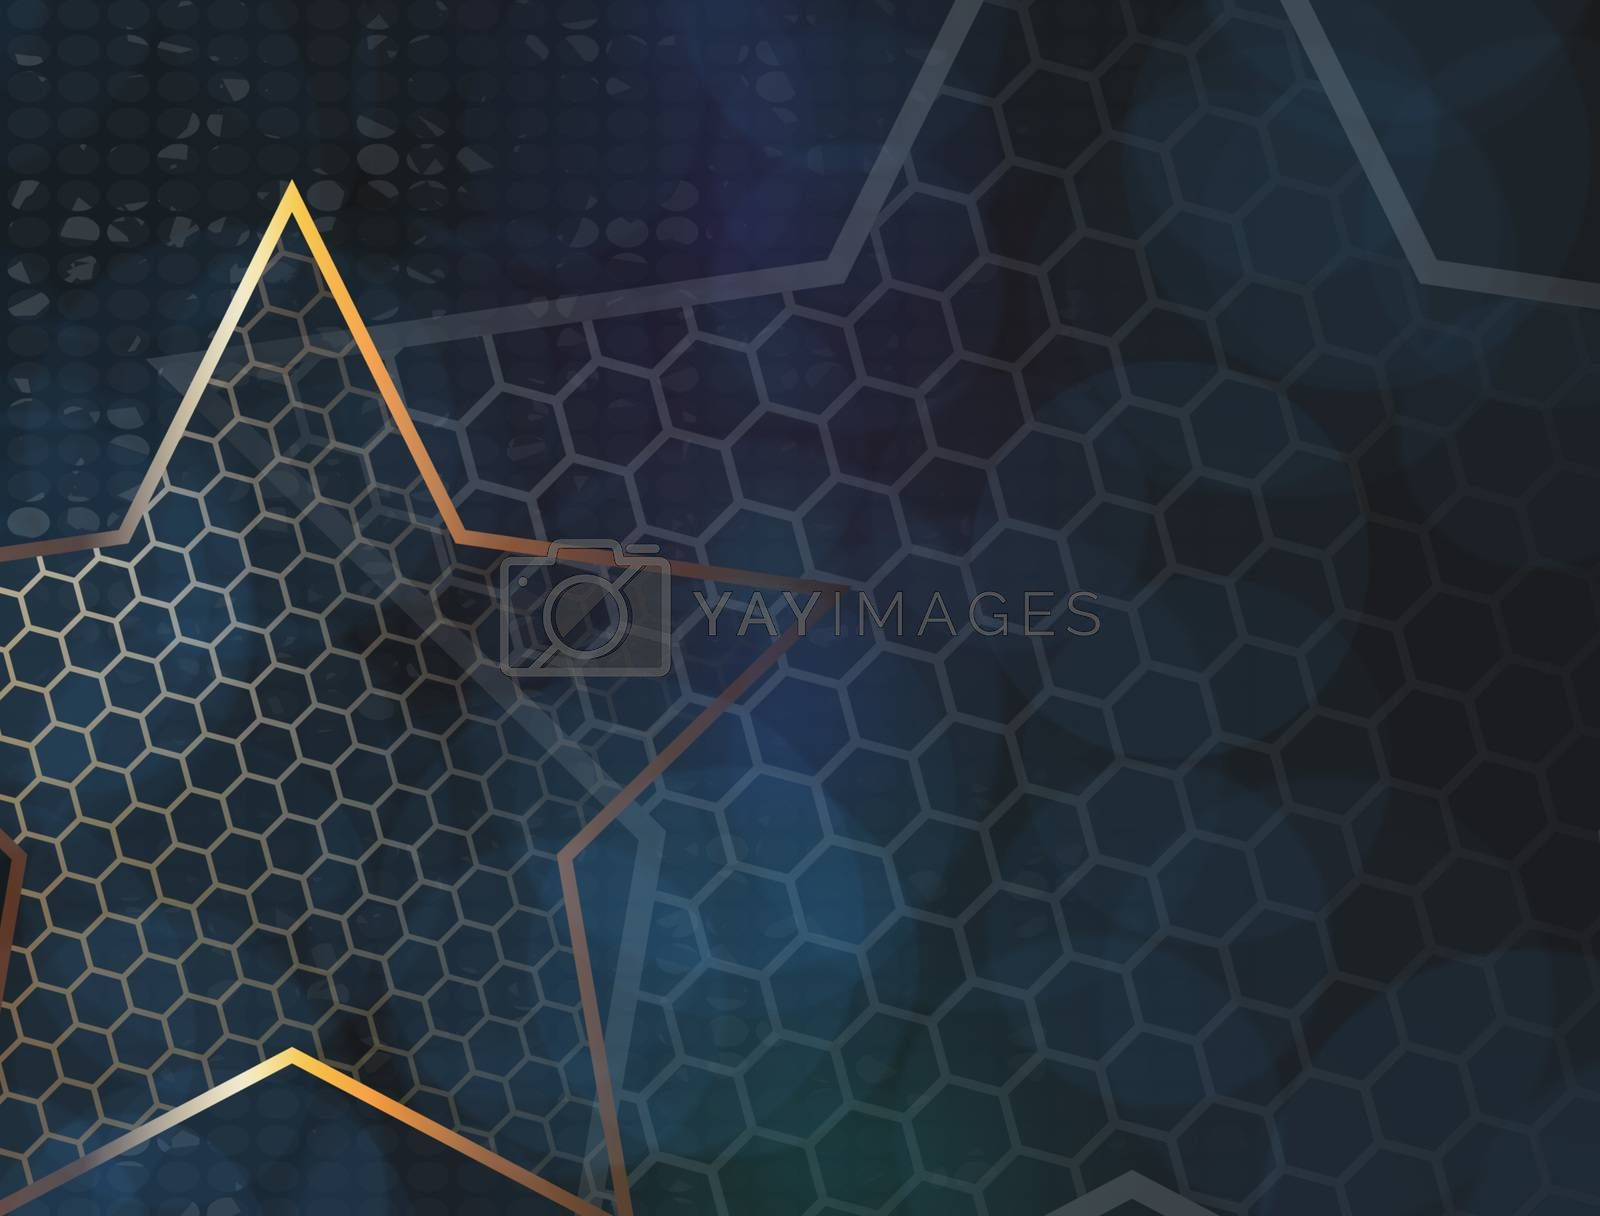 The gold stars for web background design. Modern wallpaper. Dark backdrop. Modern design template with the gold stars on transparent background. Abstract art.